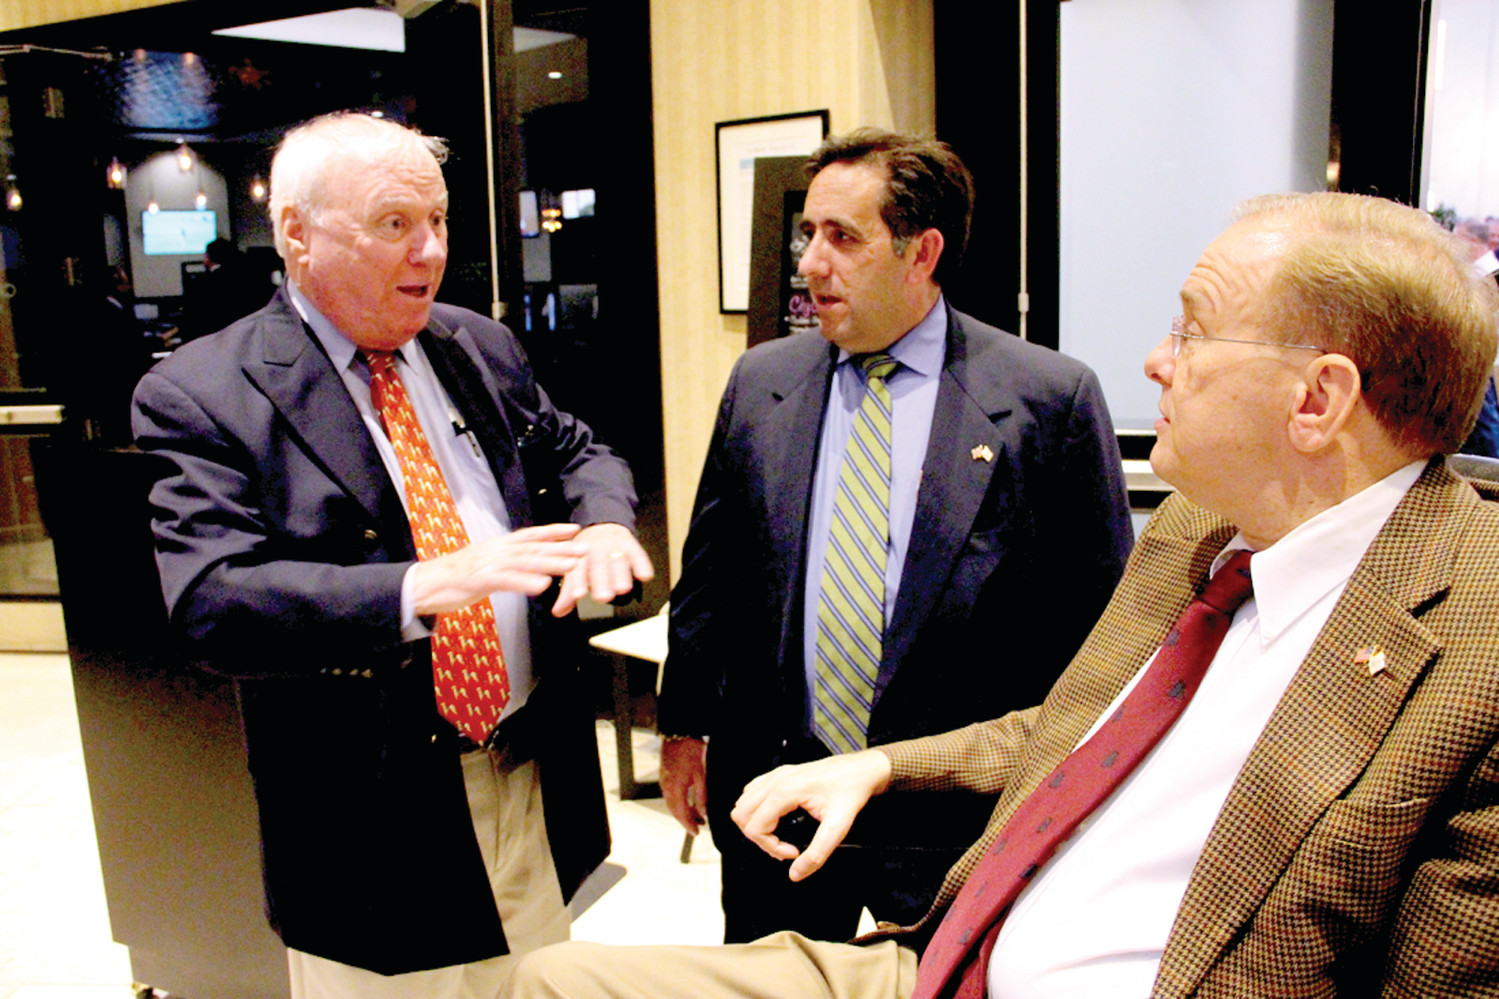 TALKING POLITICS: Former Mayor Joseph Walsh expounds on the political scene with Seth Klaiman and Congressman Jim Langevin. Klaiman manages Langevin's Rhode Island office.